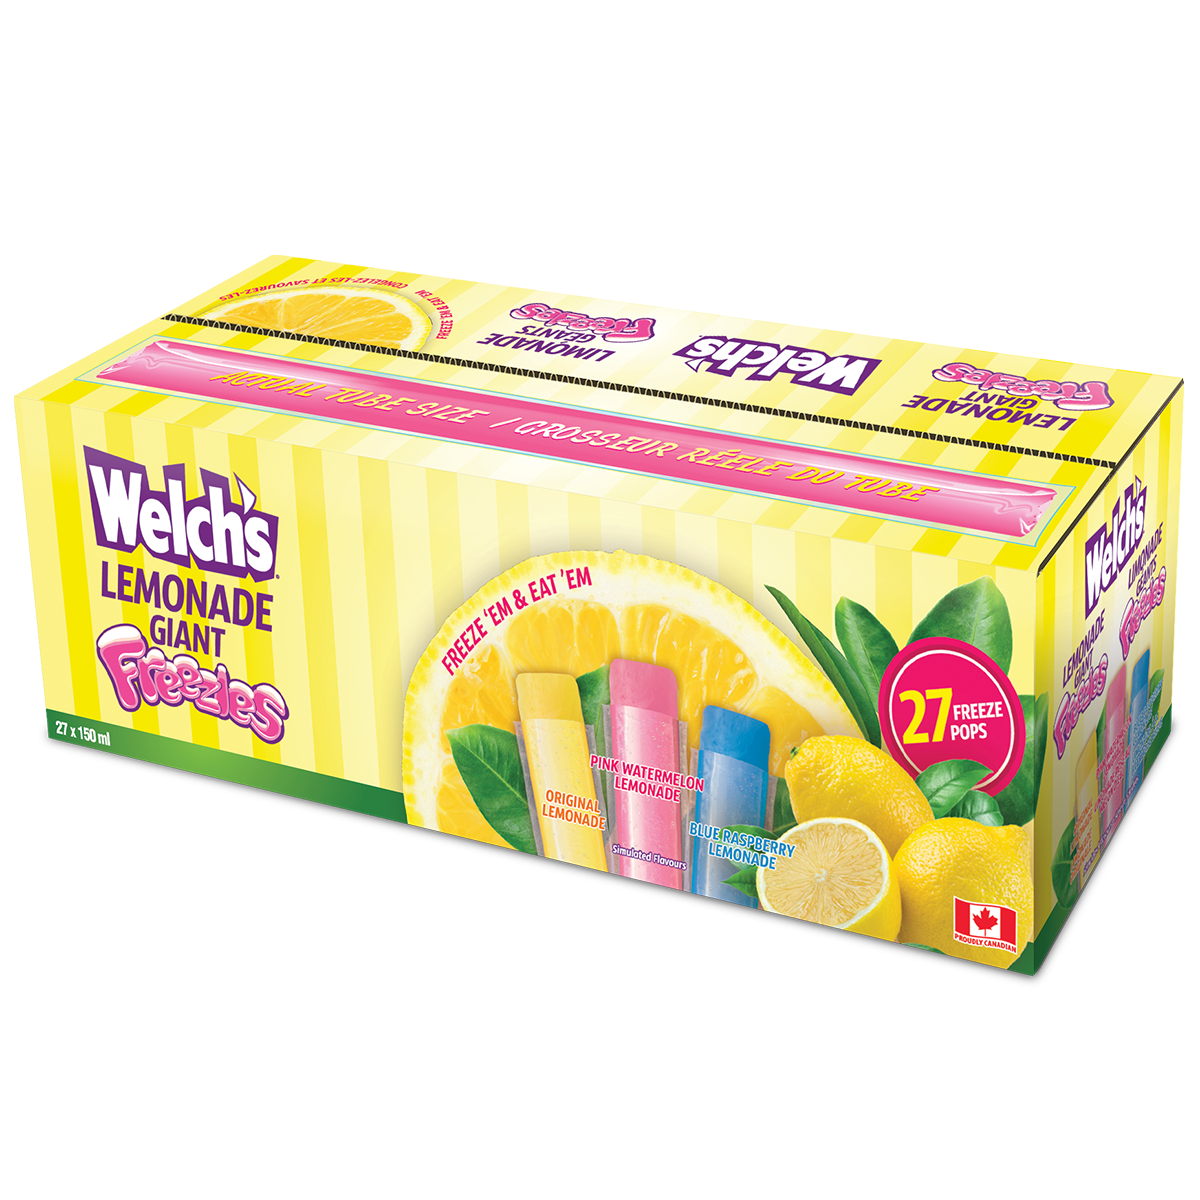 Welch's Lemonade Freezies